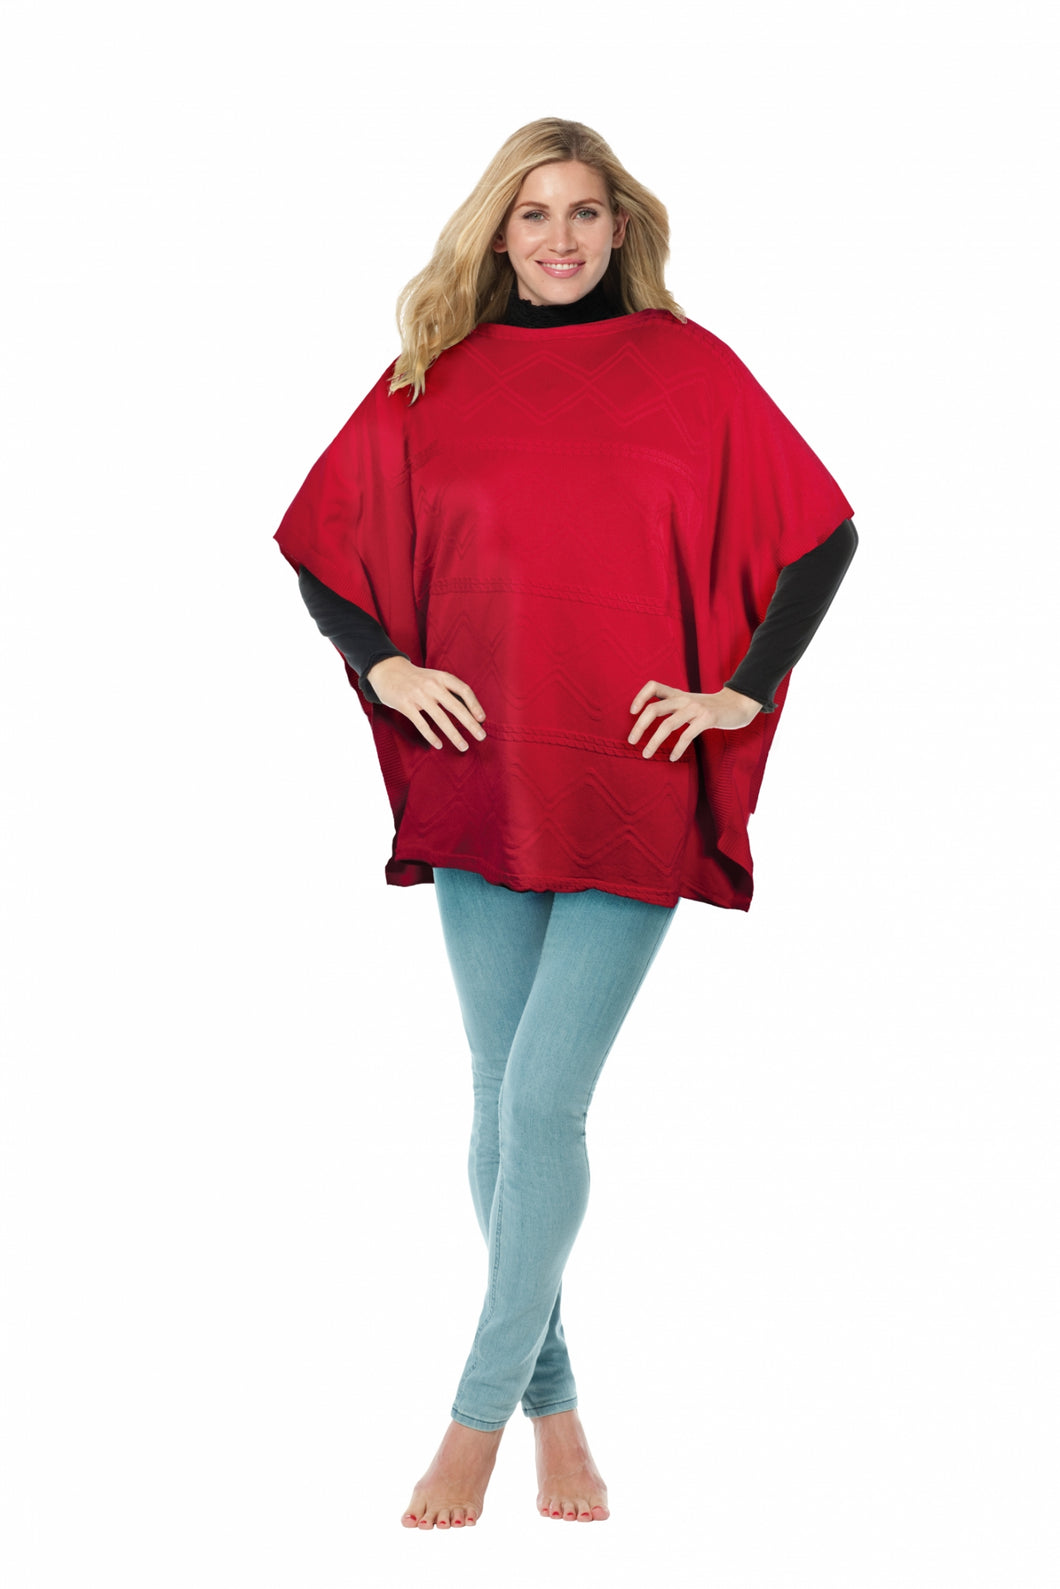 One size red poncho by Sally Allen